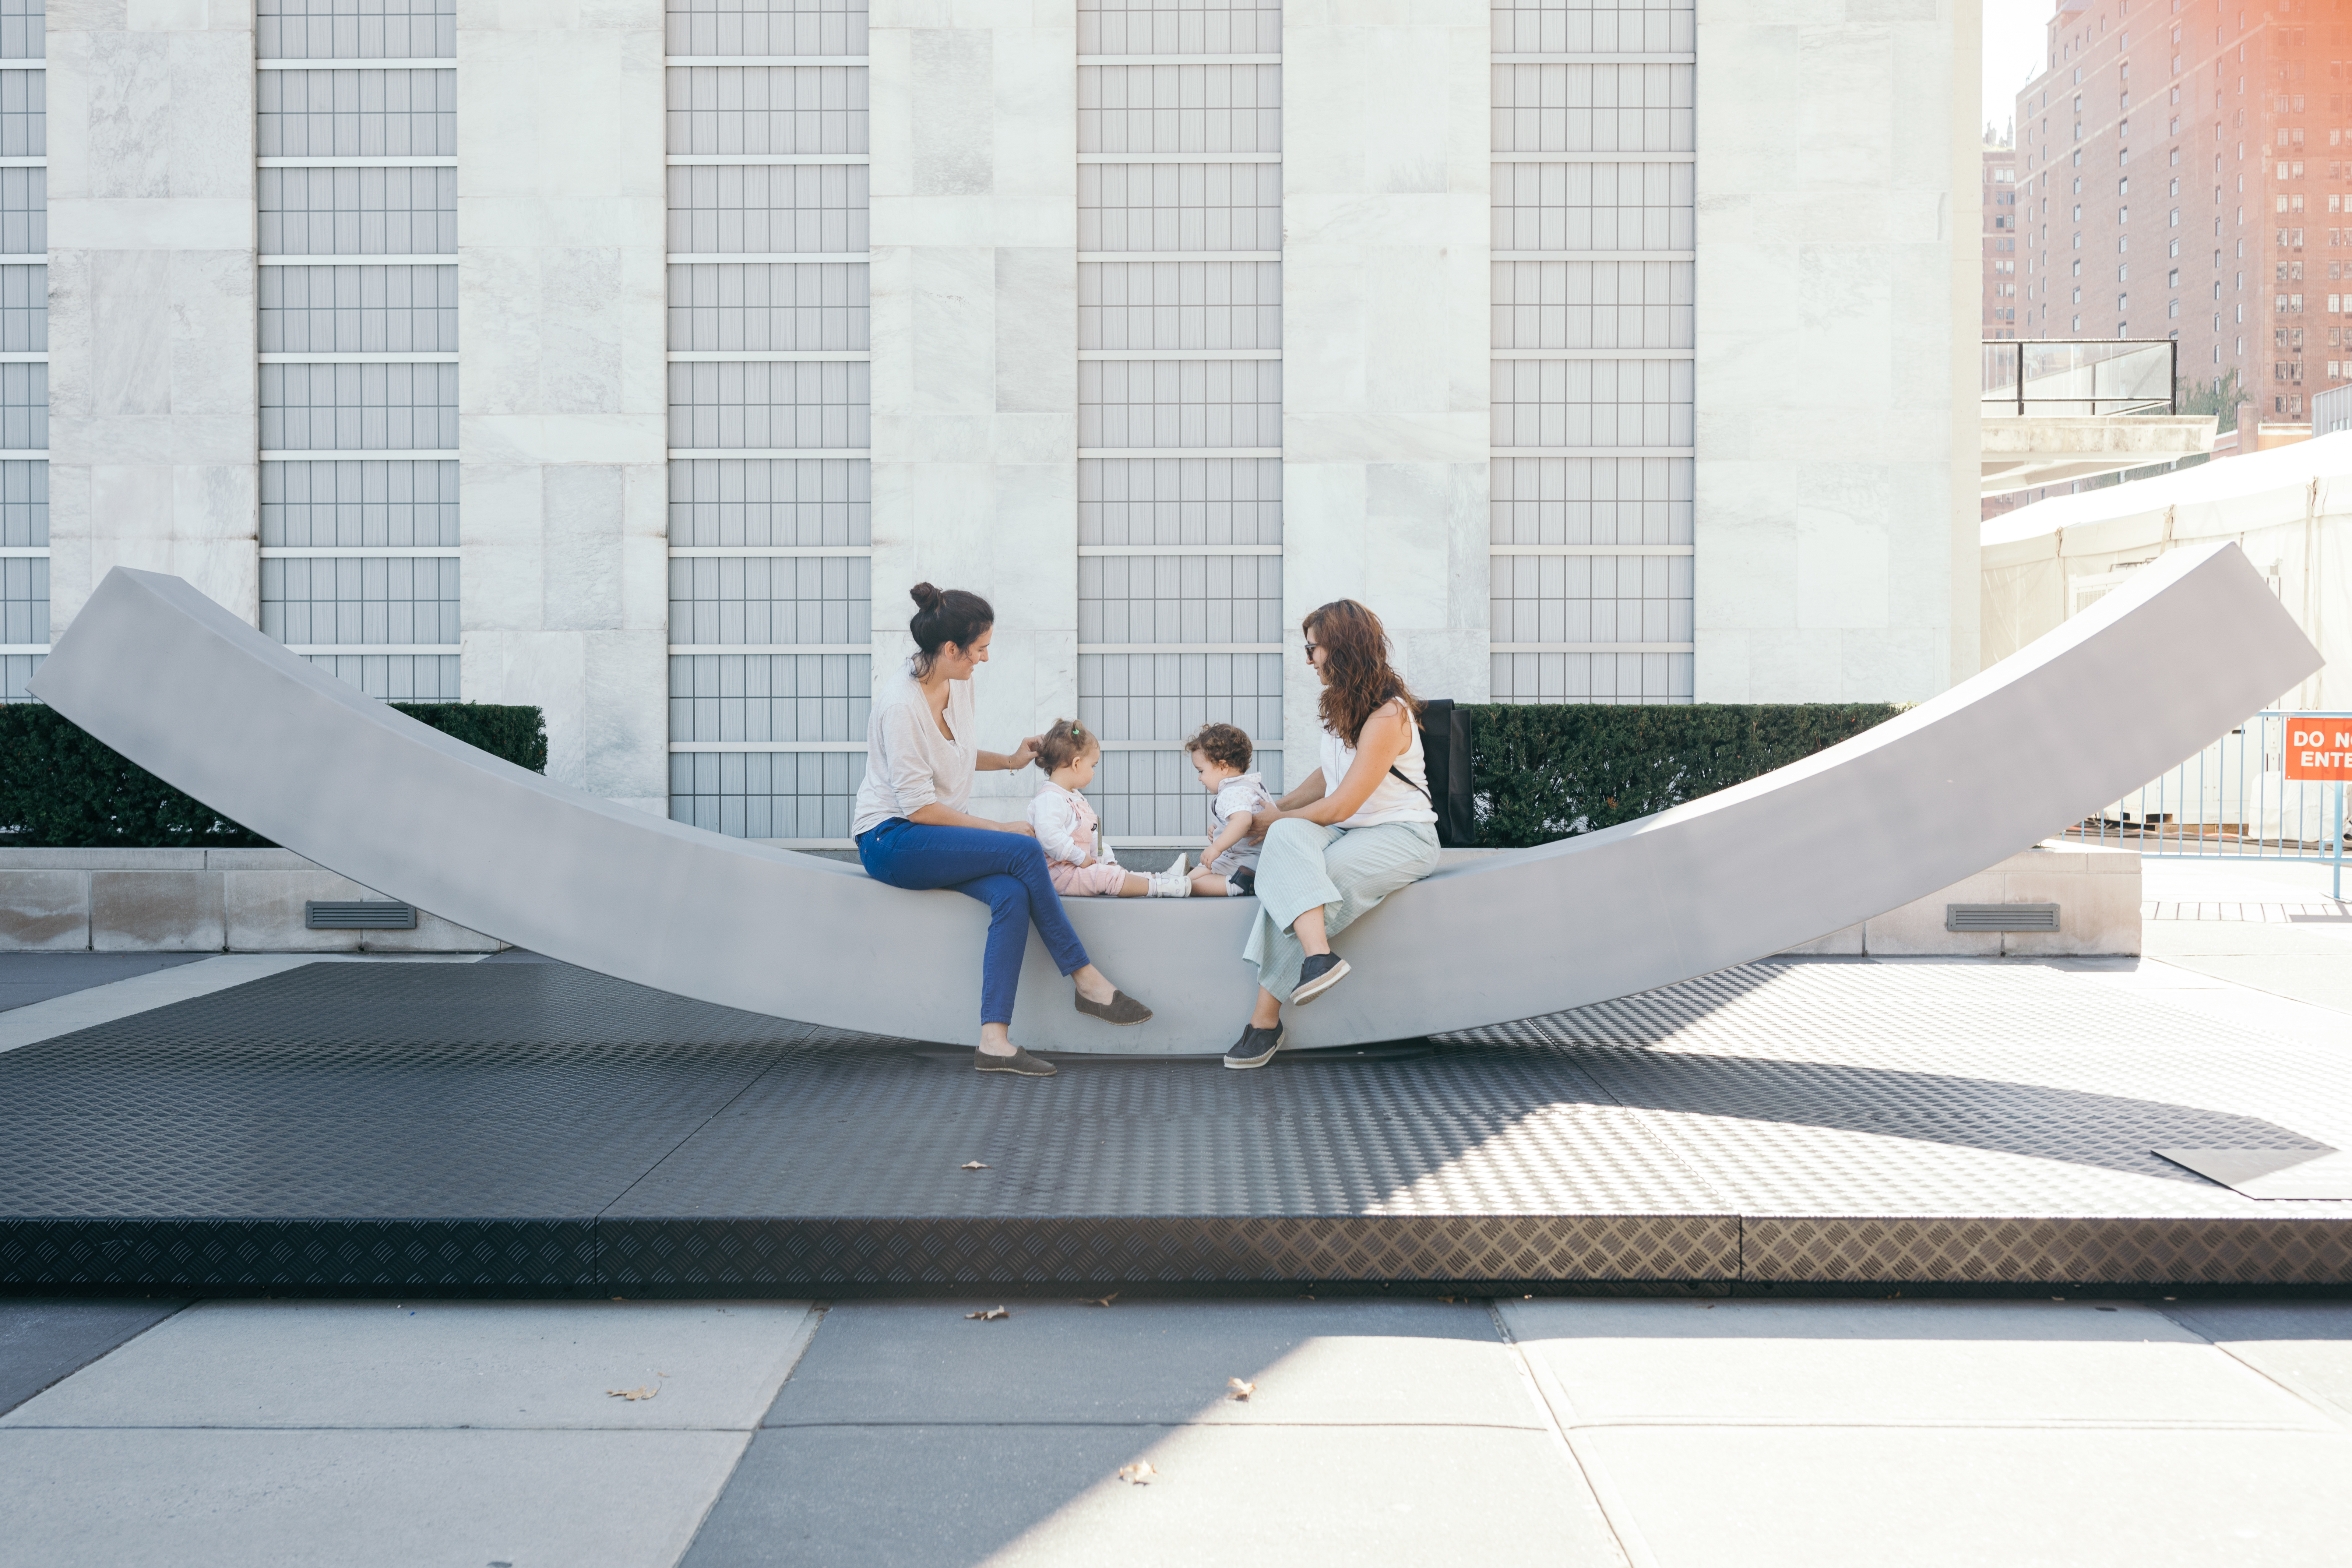 Snøhetta designed a smiling 'peace bench' to bring people together